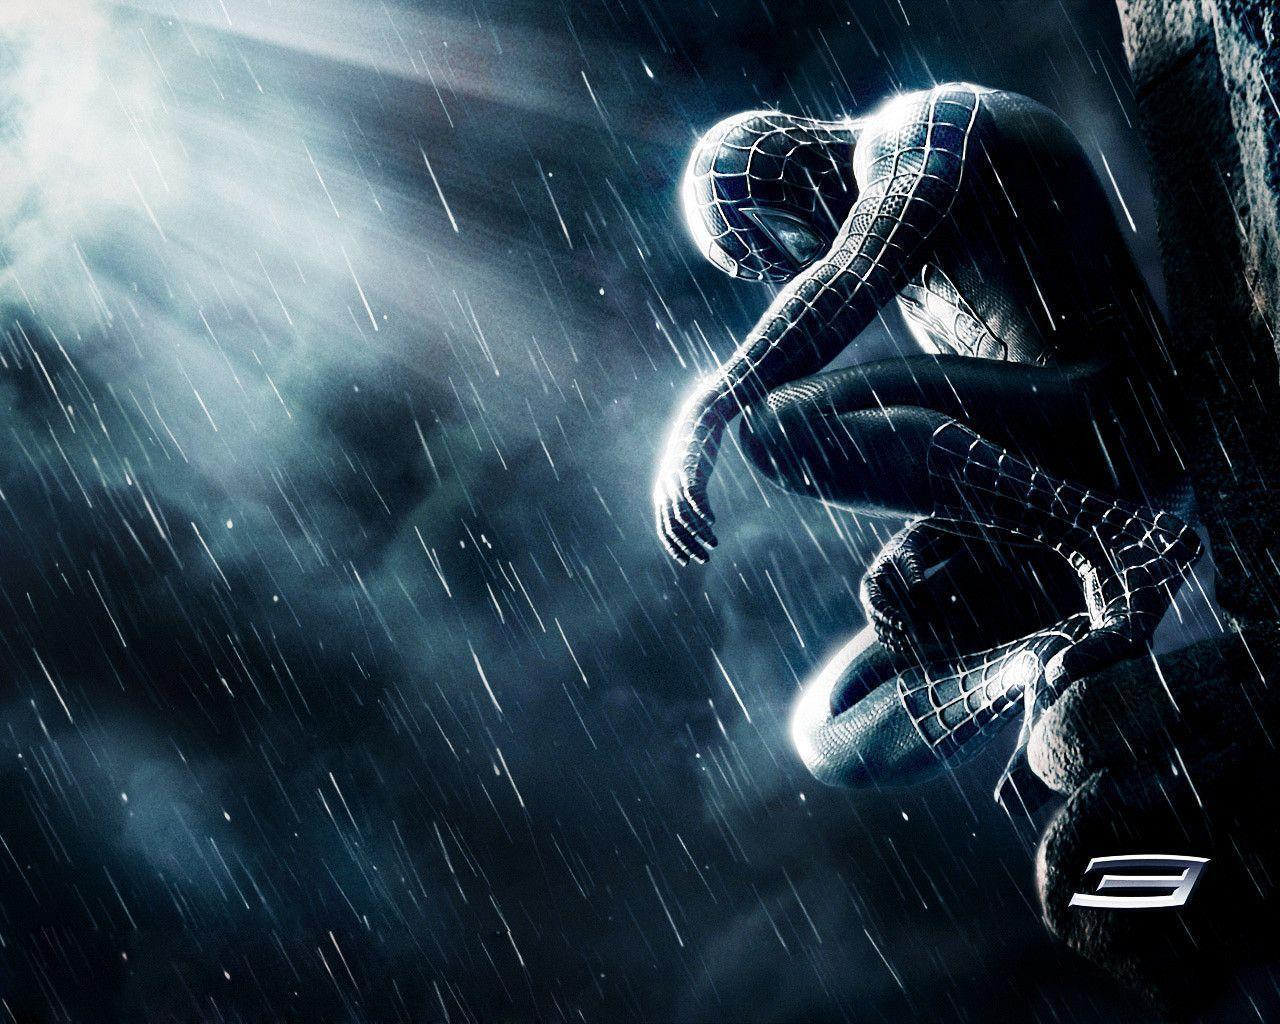 spider-man hd wallpapers - wallpaper cave